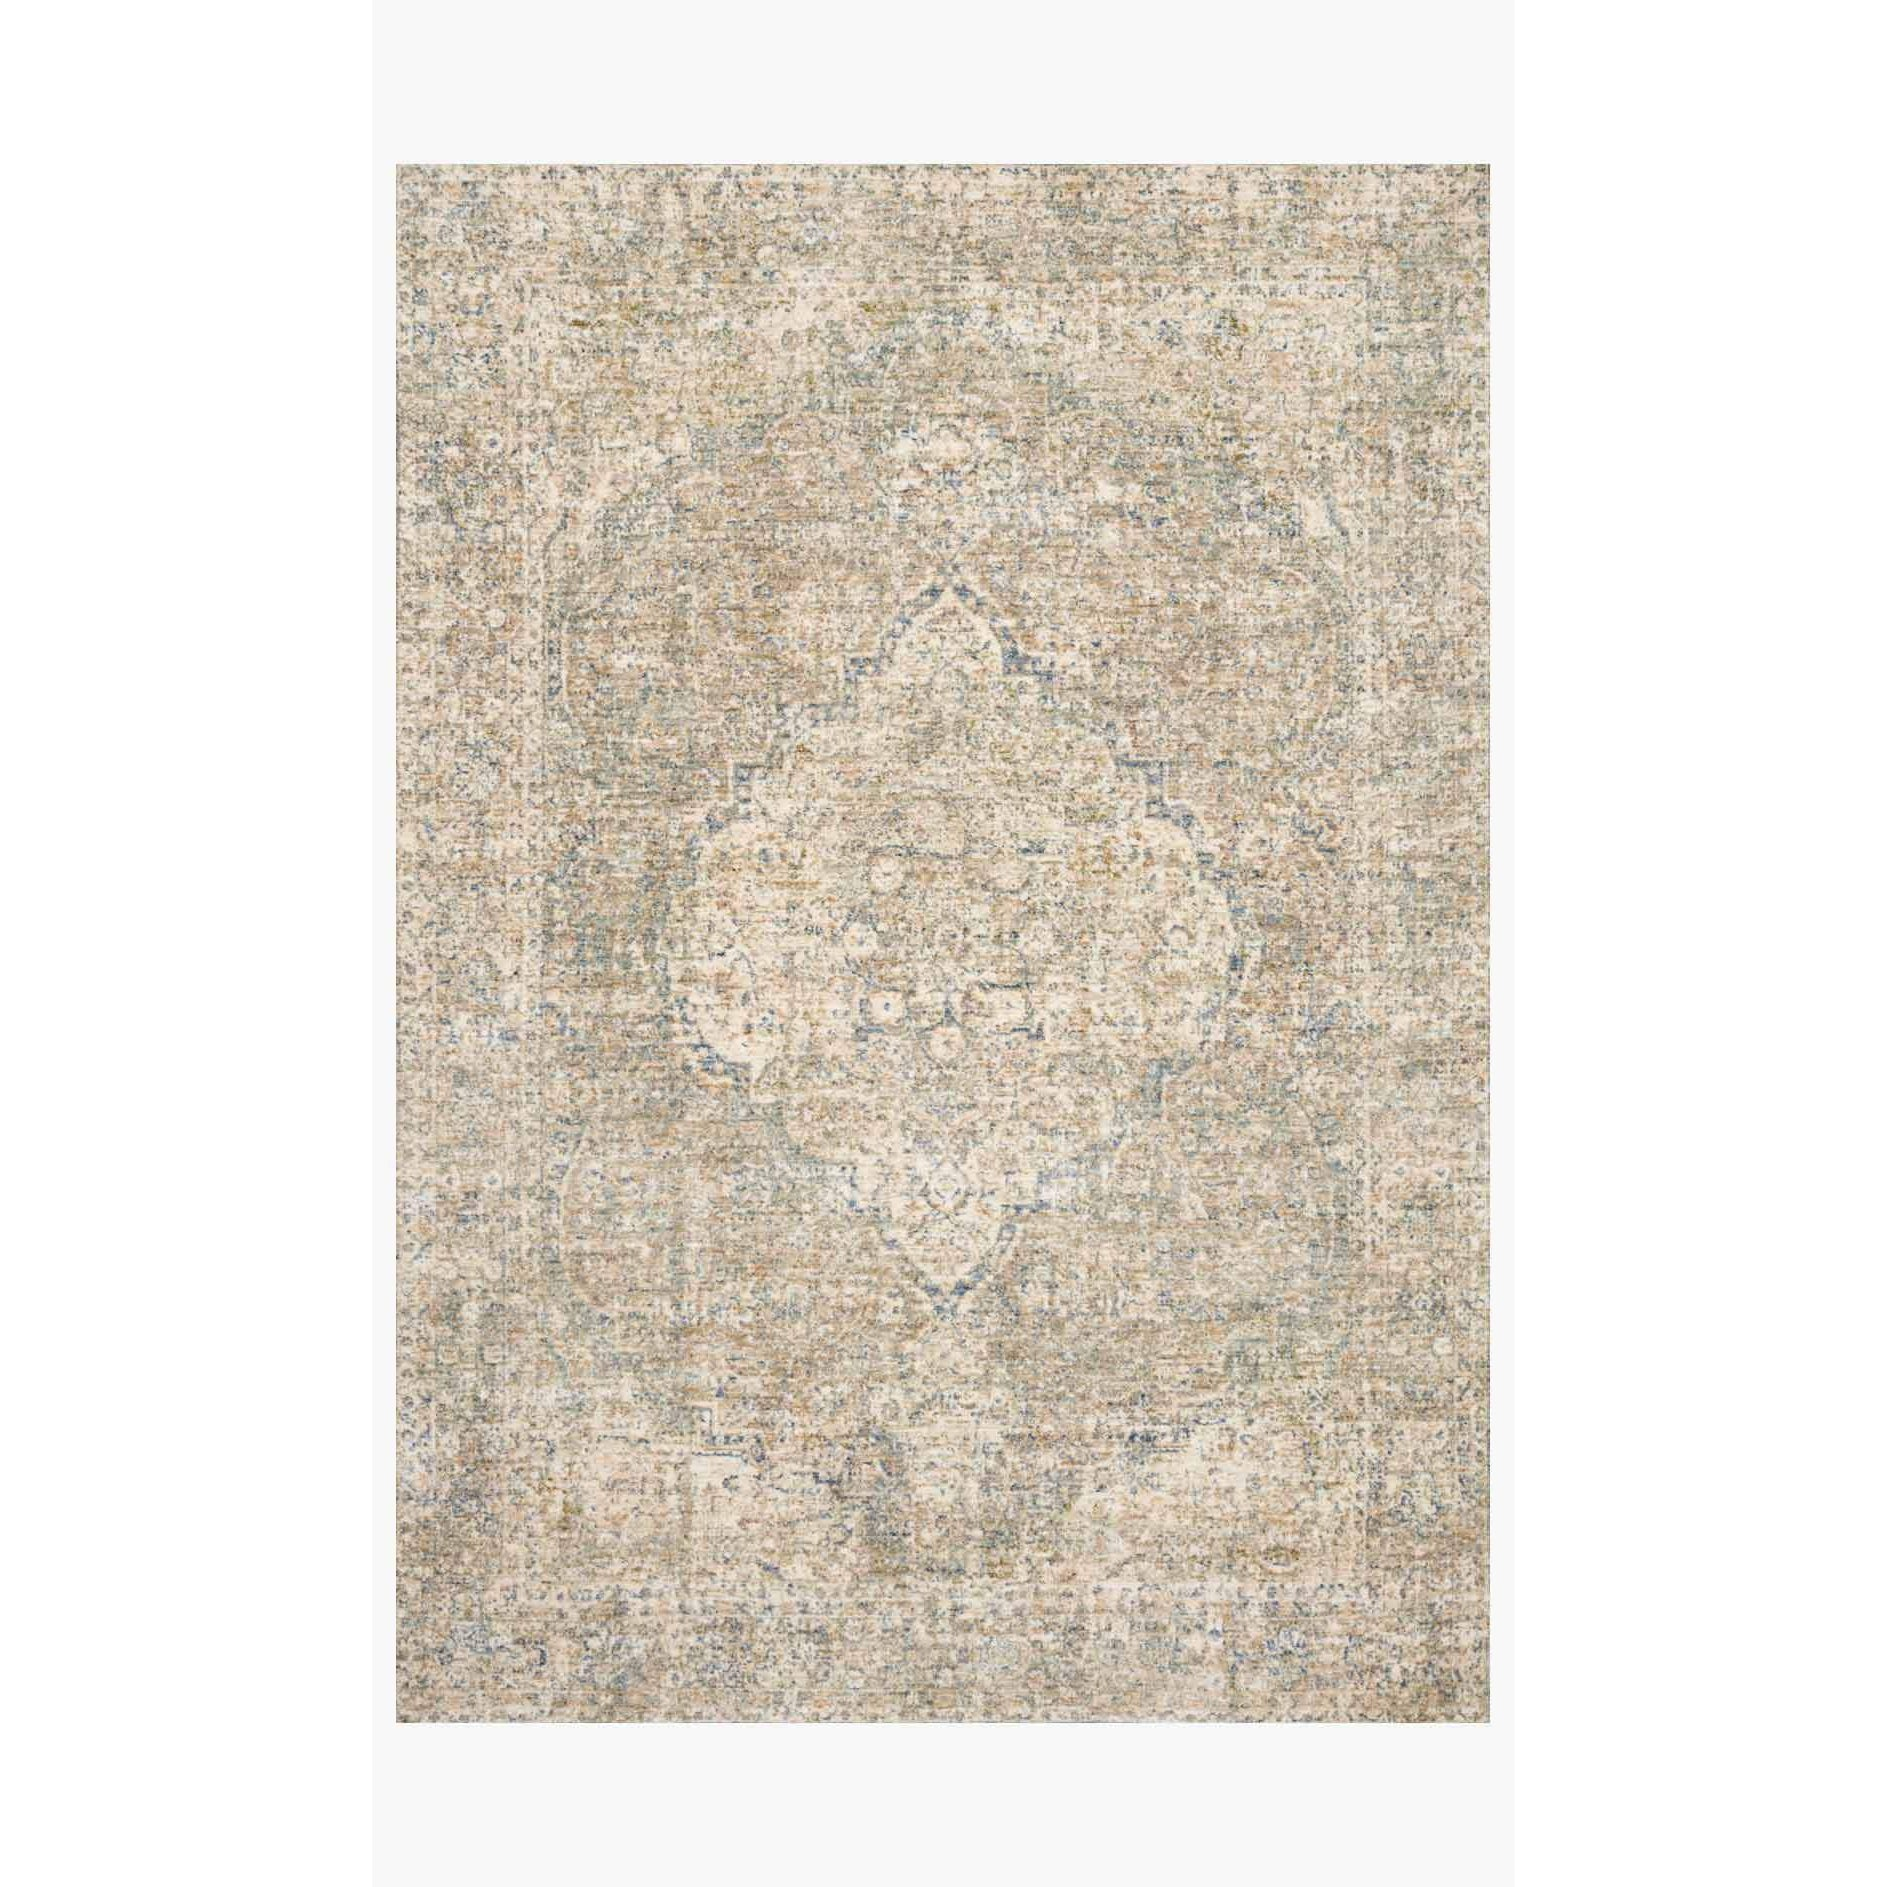 Revere Rugs by Loloi - REV-08 Granite / Blue-Loloi Rugs-Blue Hand Home